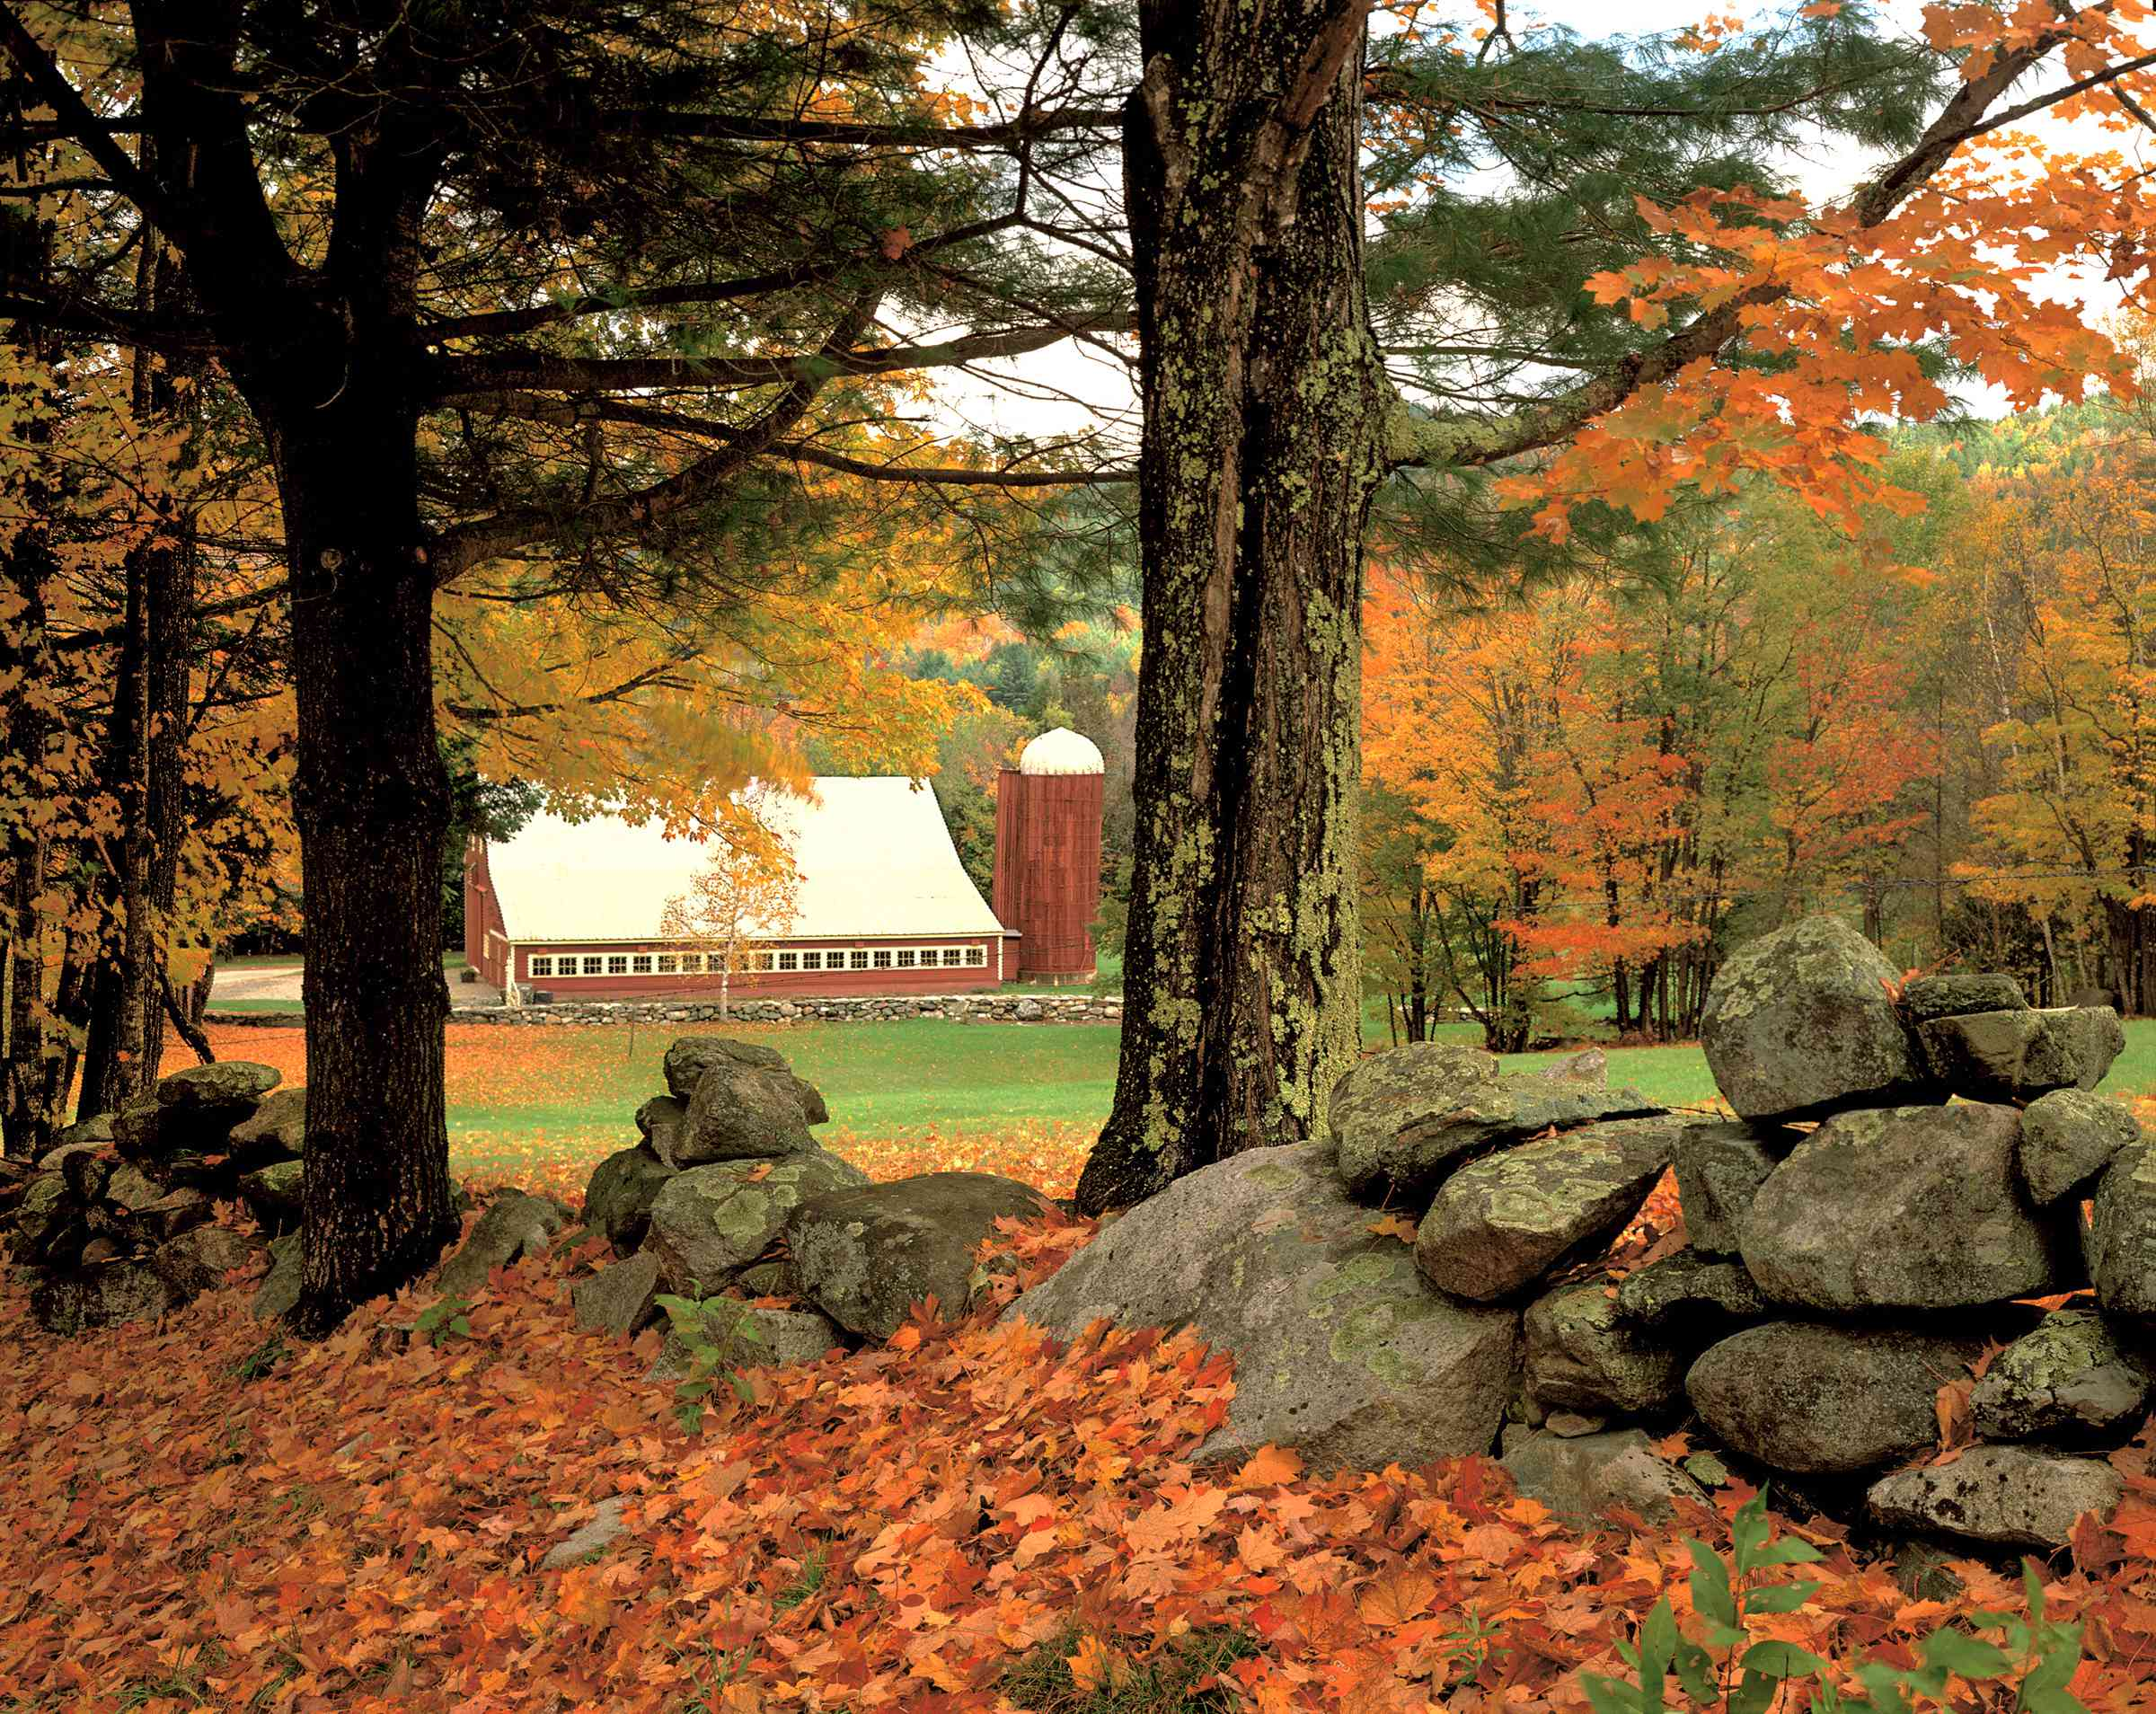 A red barn in the distance peeks between autumn sugar maple trees alongside an old stone wall covered with fall leaves.